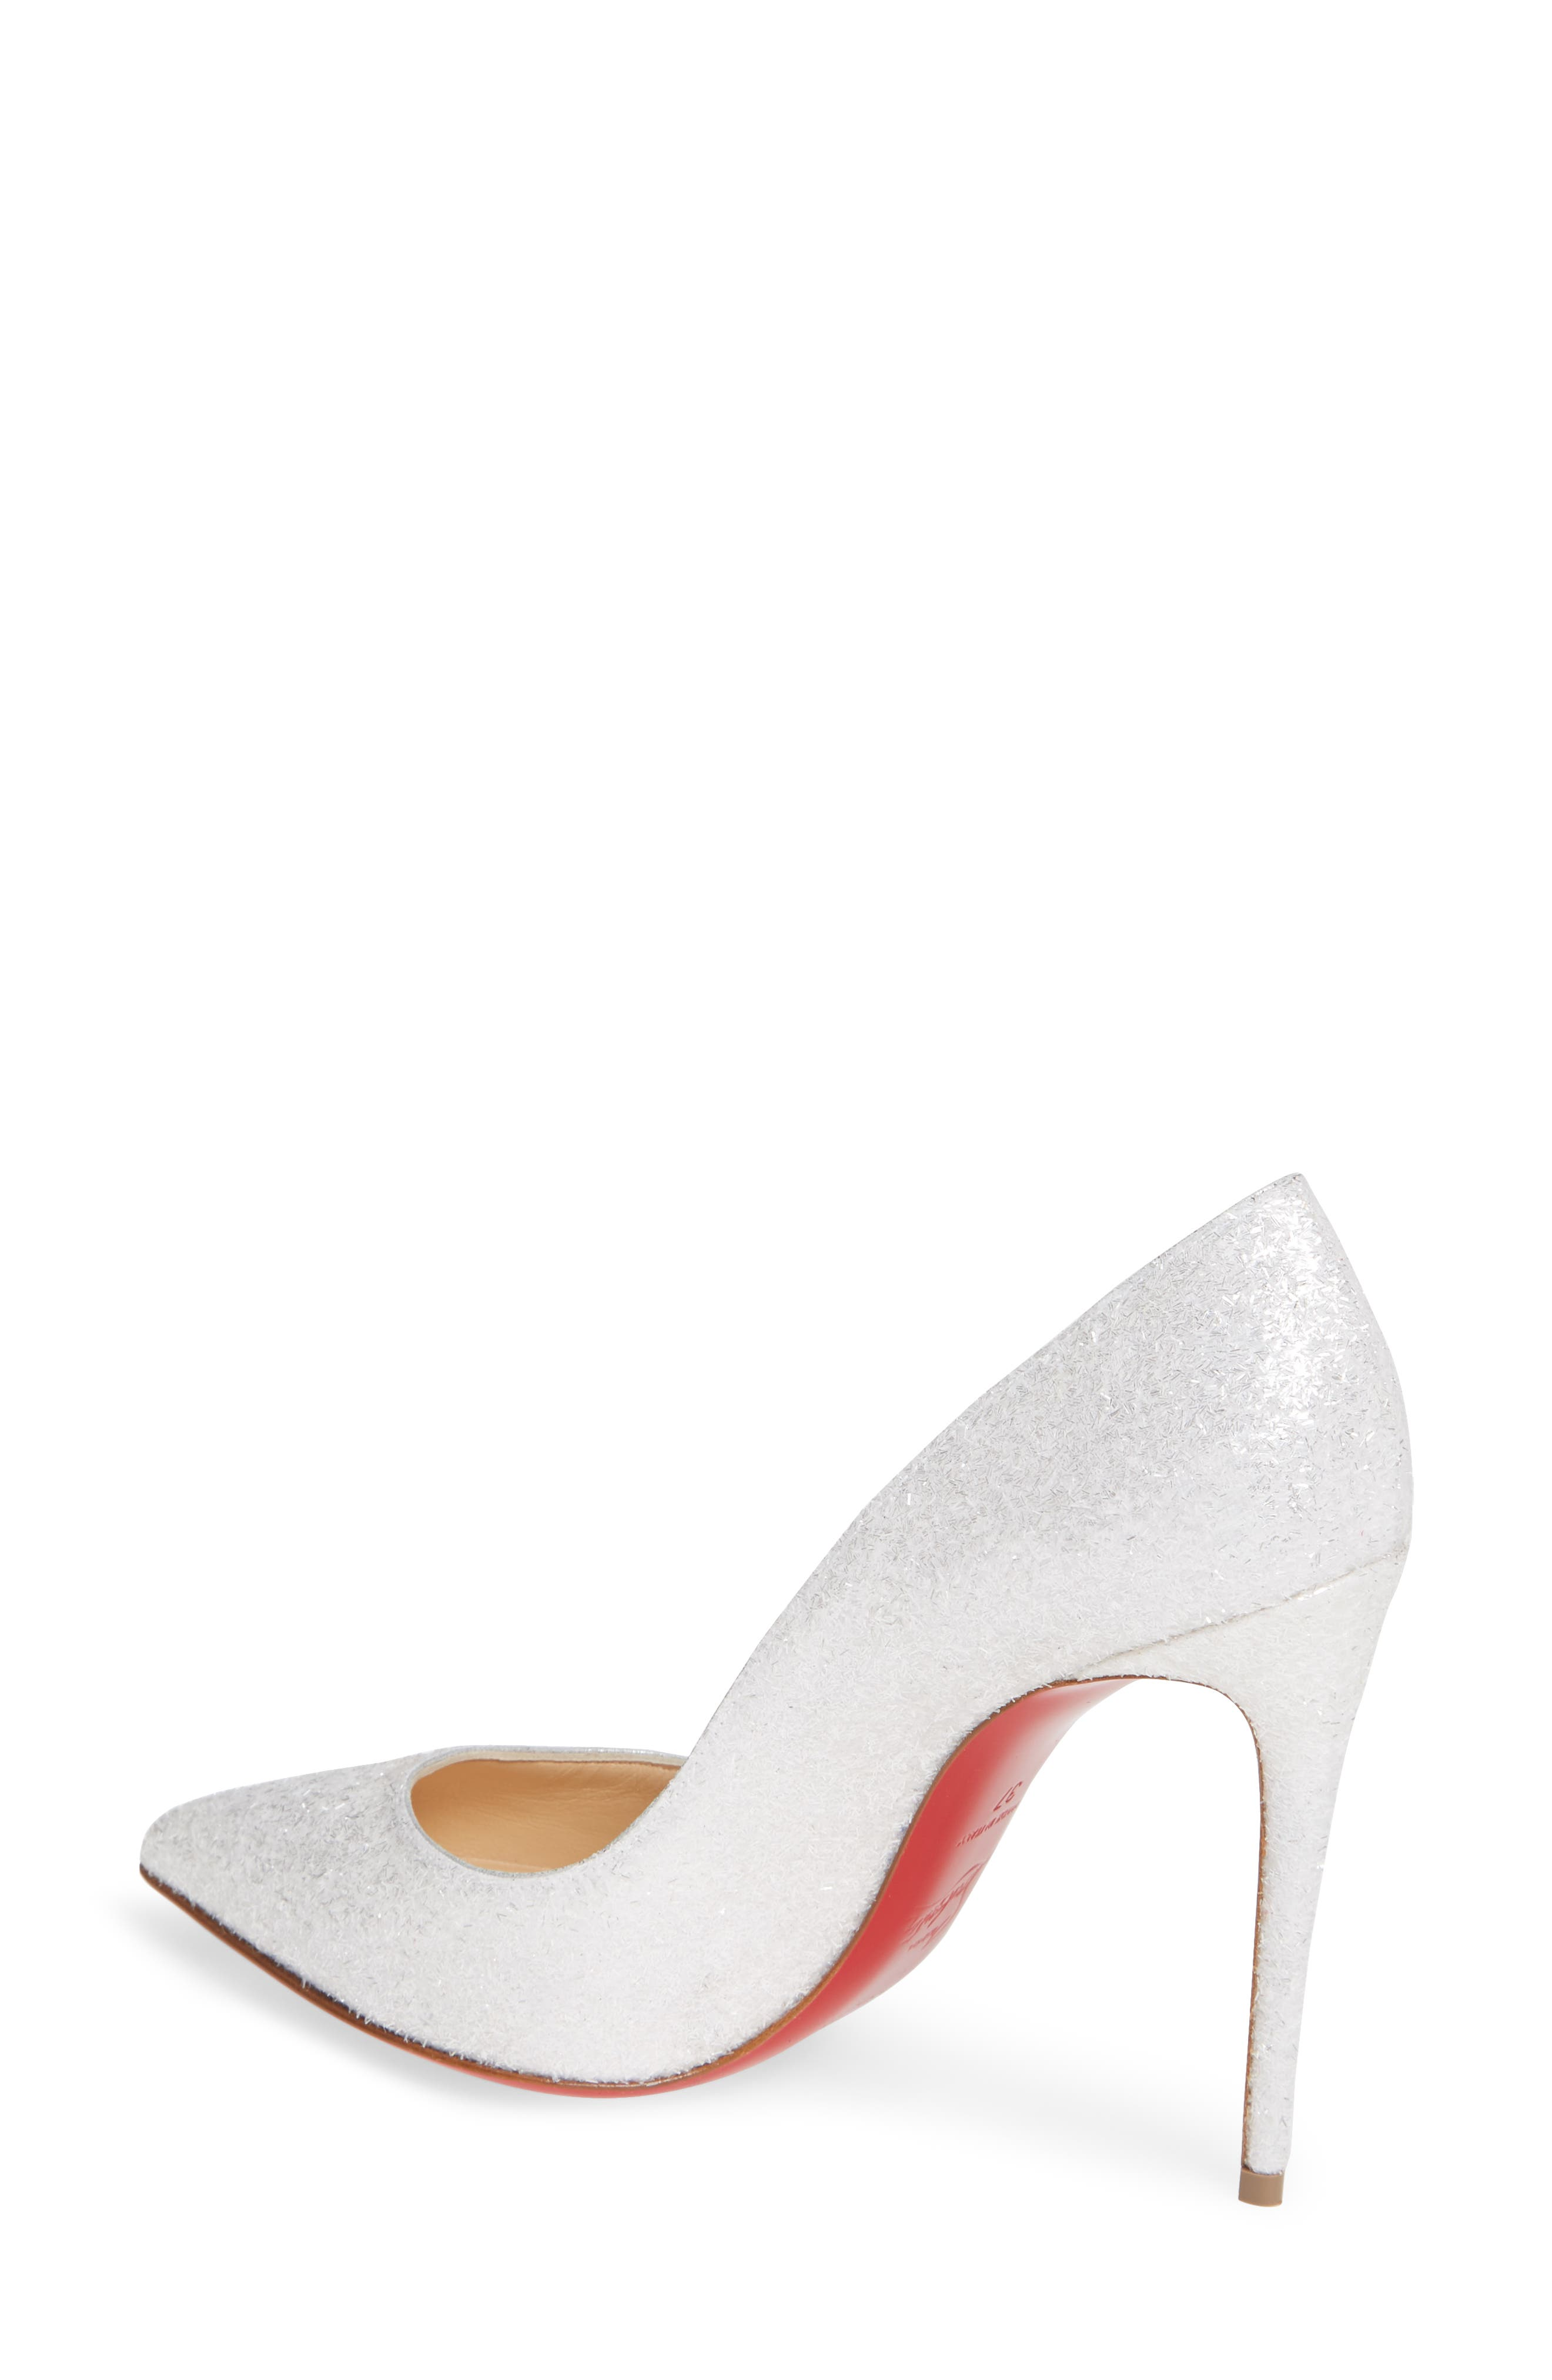 CHRISTIAN LOUBOUTIN, Pigalle Follies Pointy Toe Pump, Alternate thumbnail 2, color, WHITE GLITTER